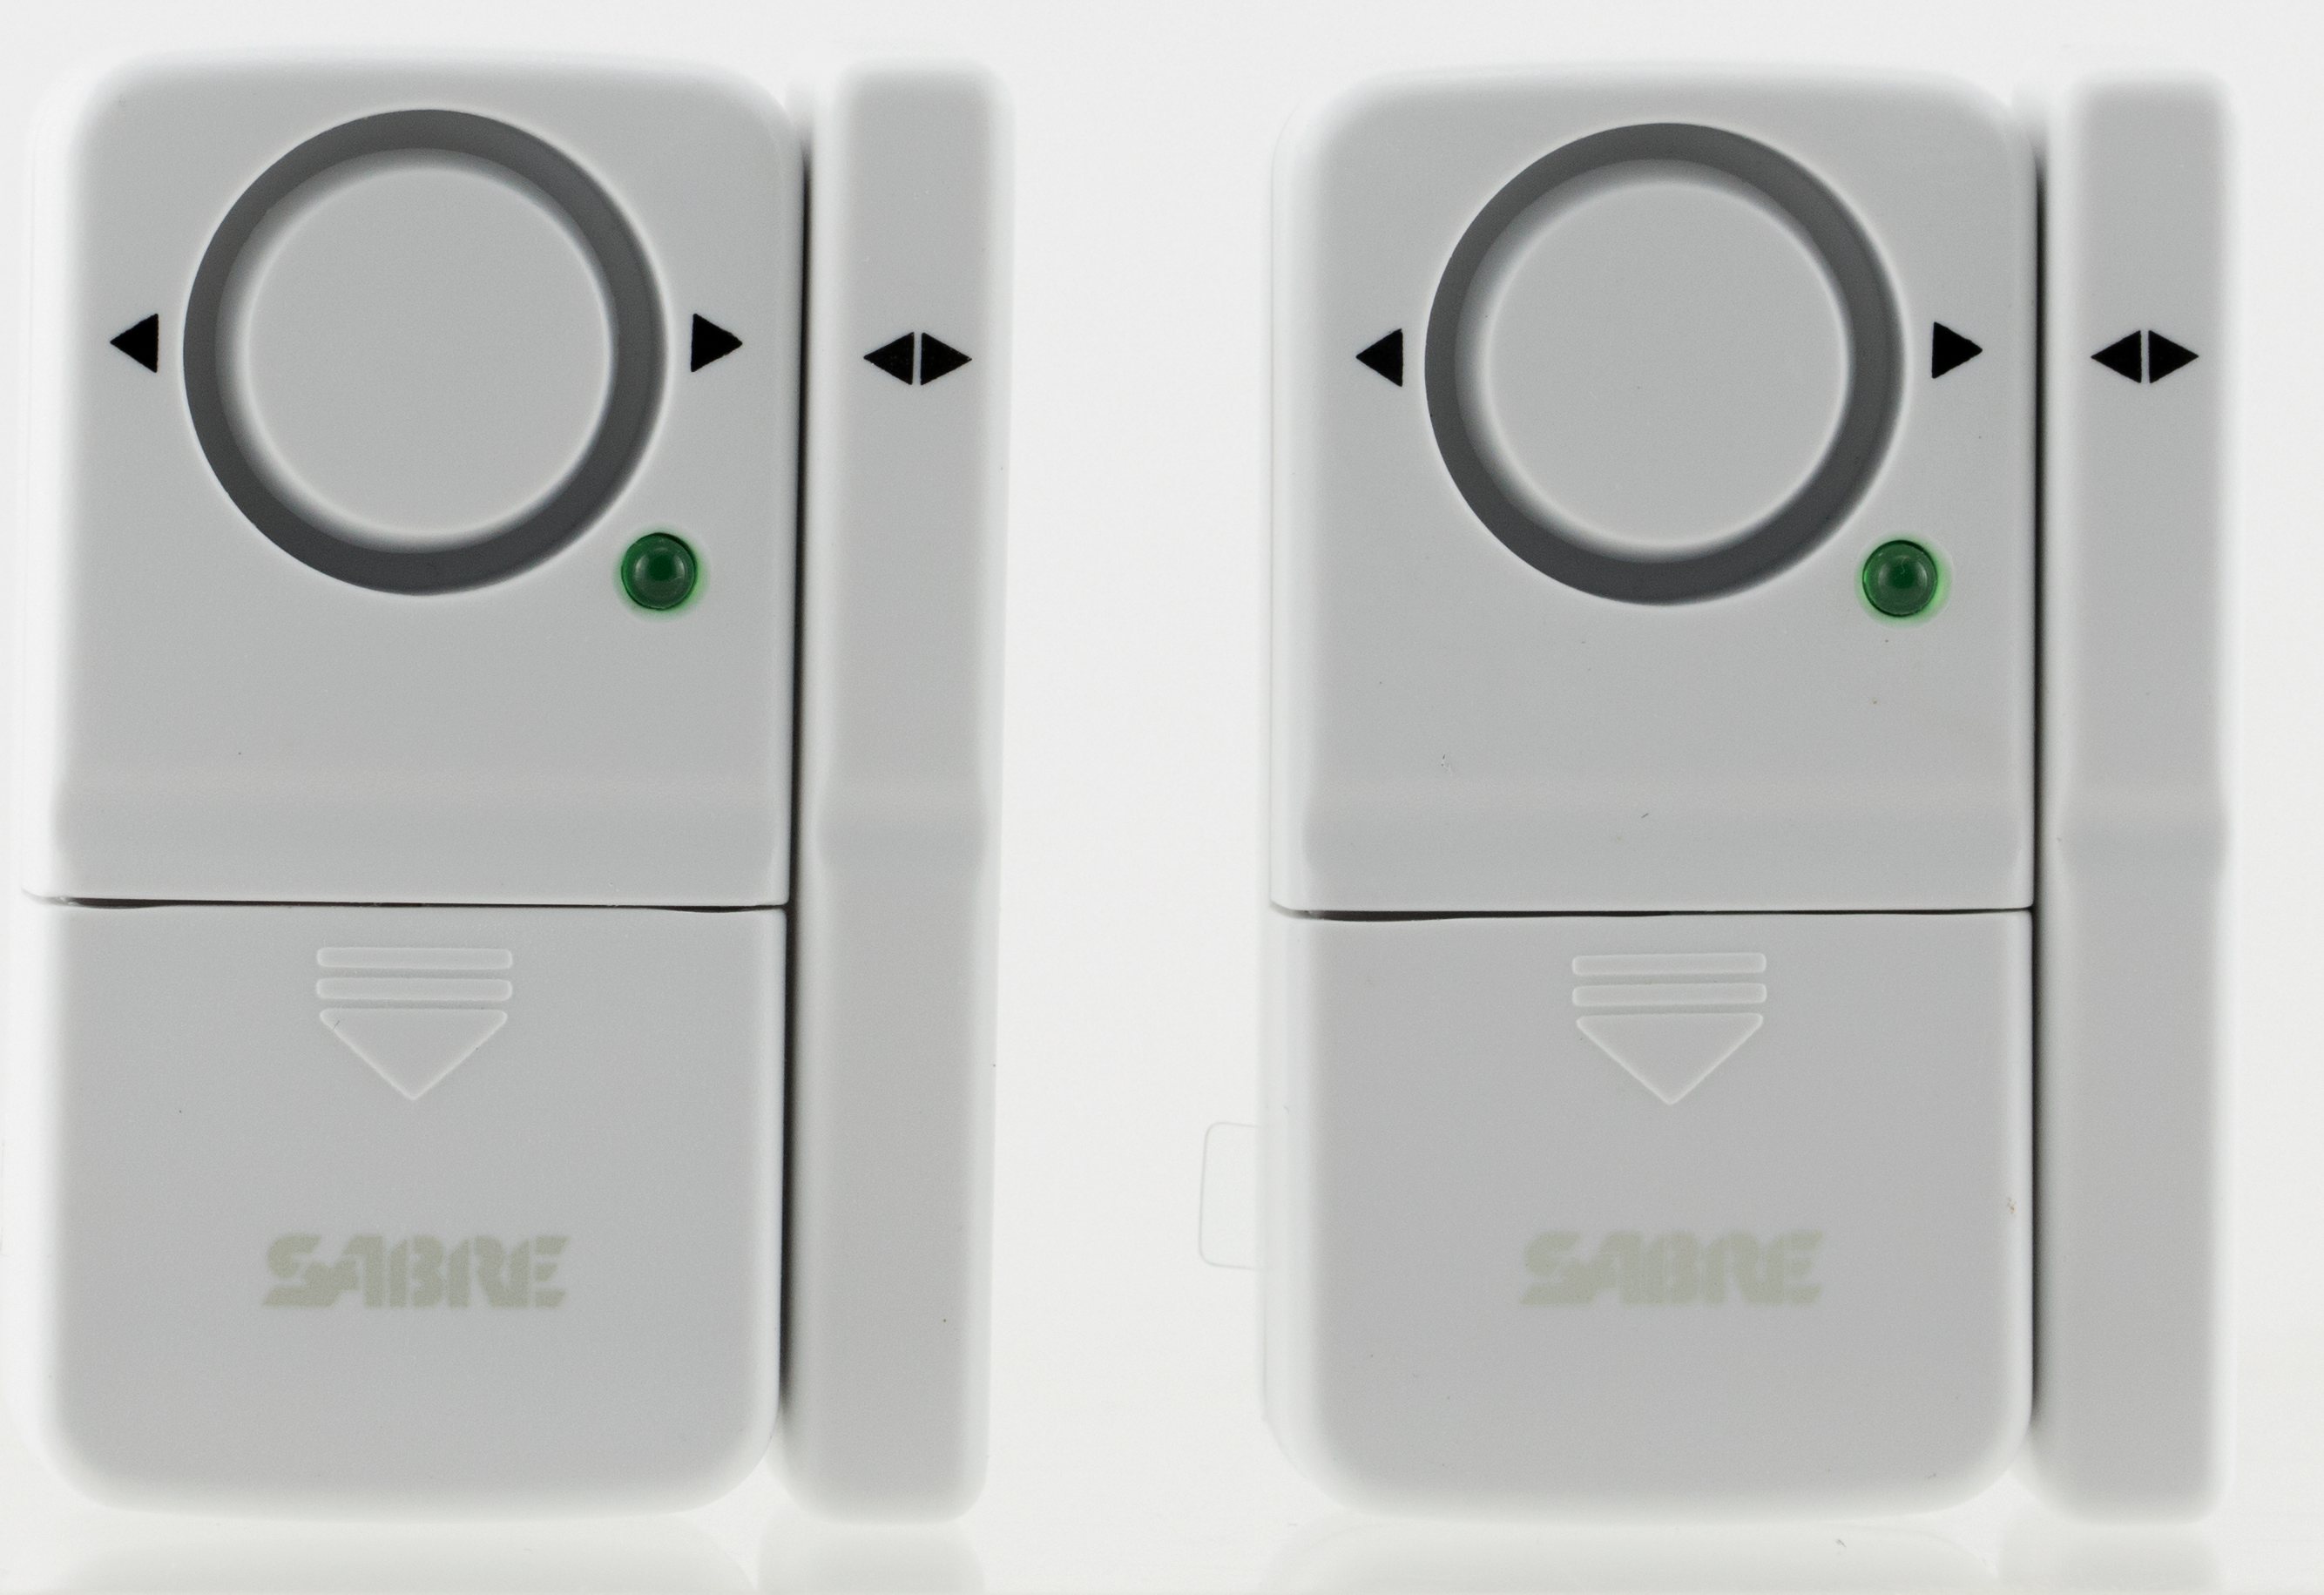 Sabre HSDWA2 Home Series Door Alarm 2 Pack 2-7 lbs 750 ft 120 White